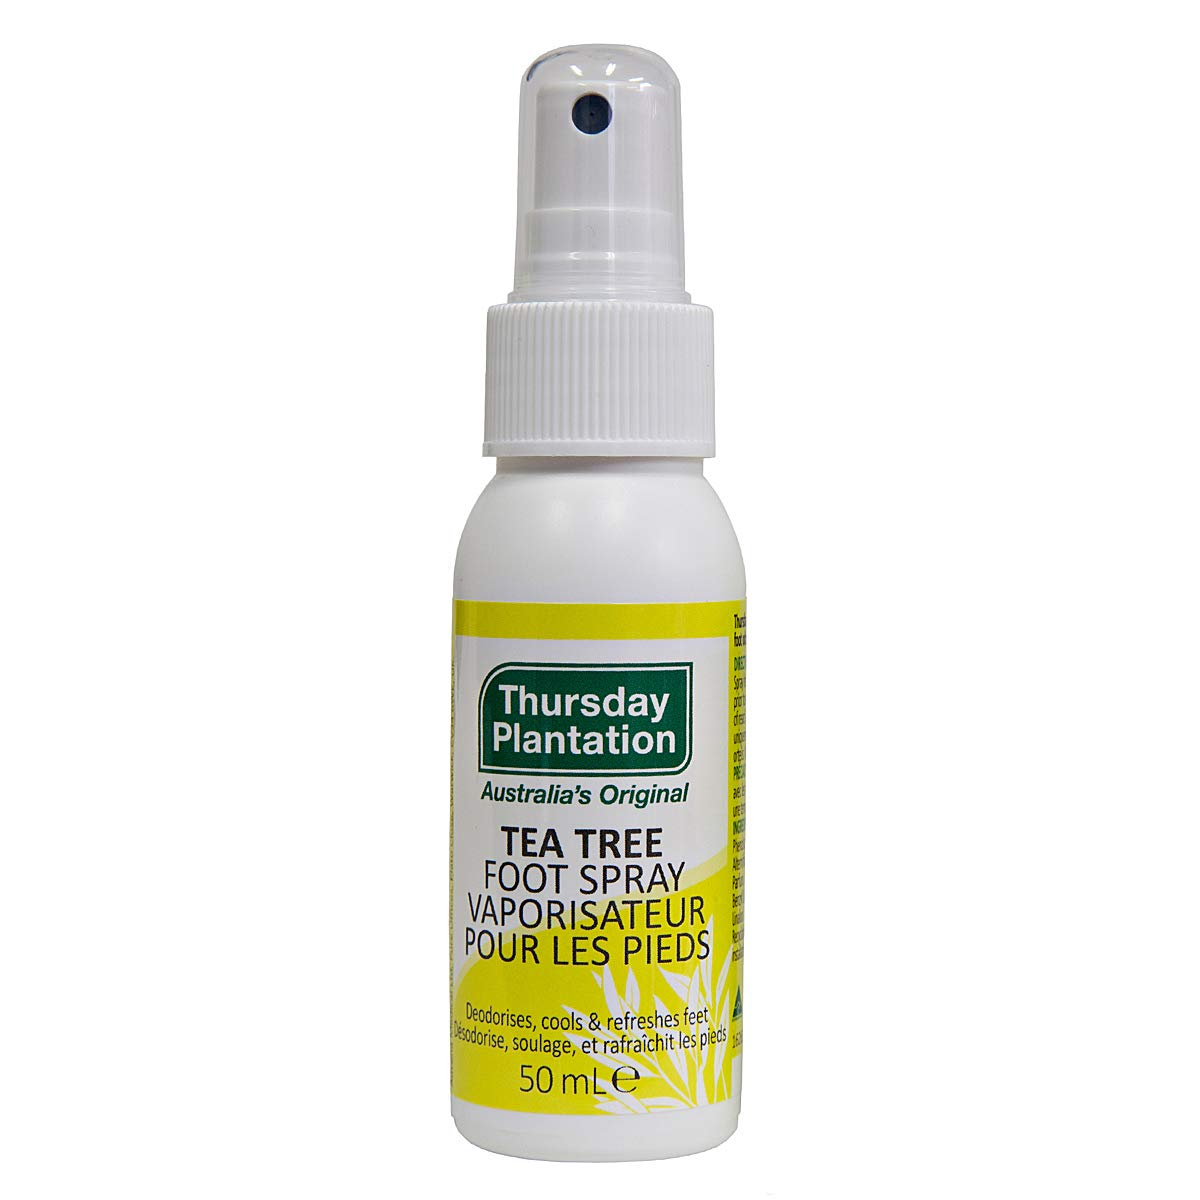 Thursday Plantation - Tea Tree Foot Spray, 1.69 fl oz spray